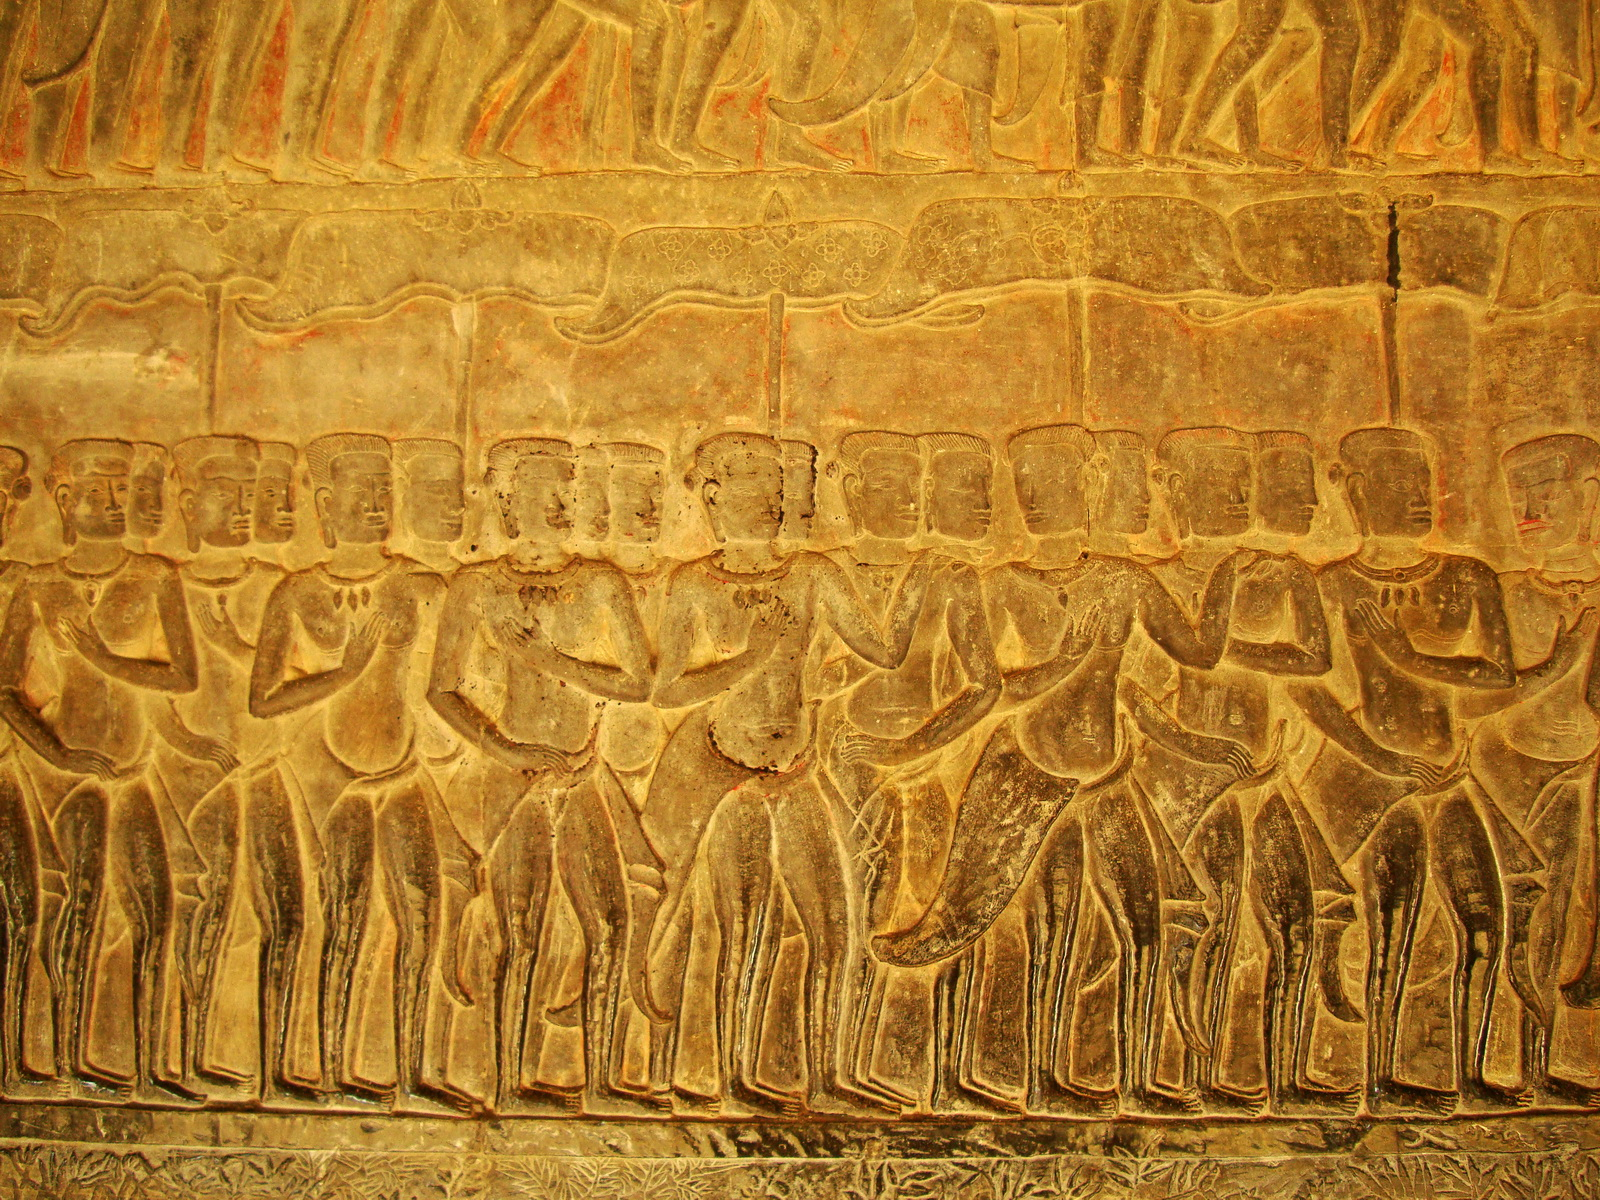 Angkor Wat Bas relief S Gallery E Wing Heavens and Hells 21